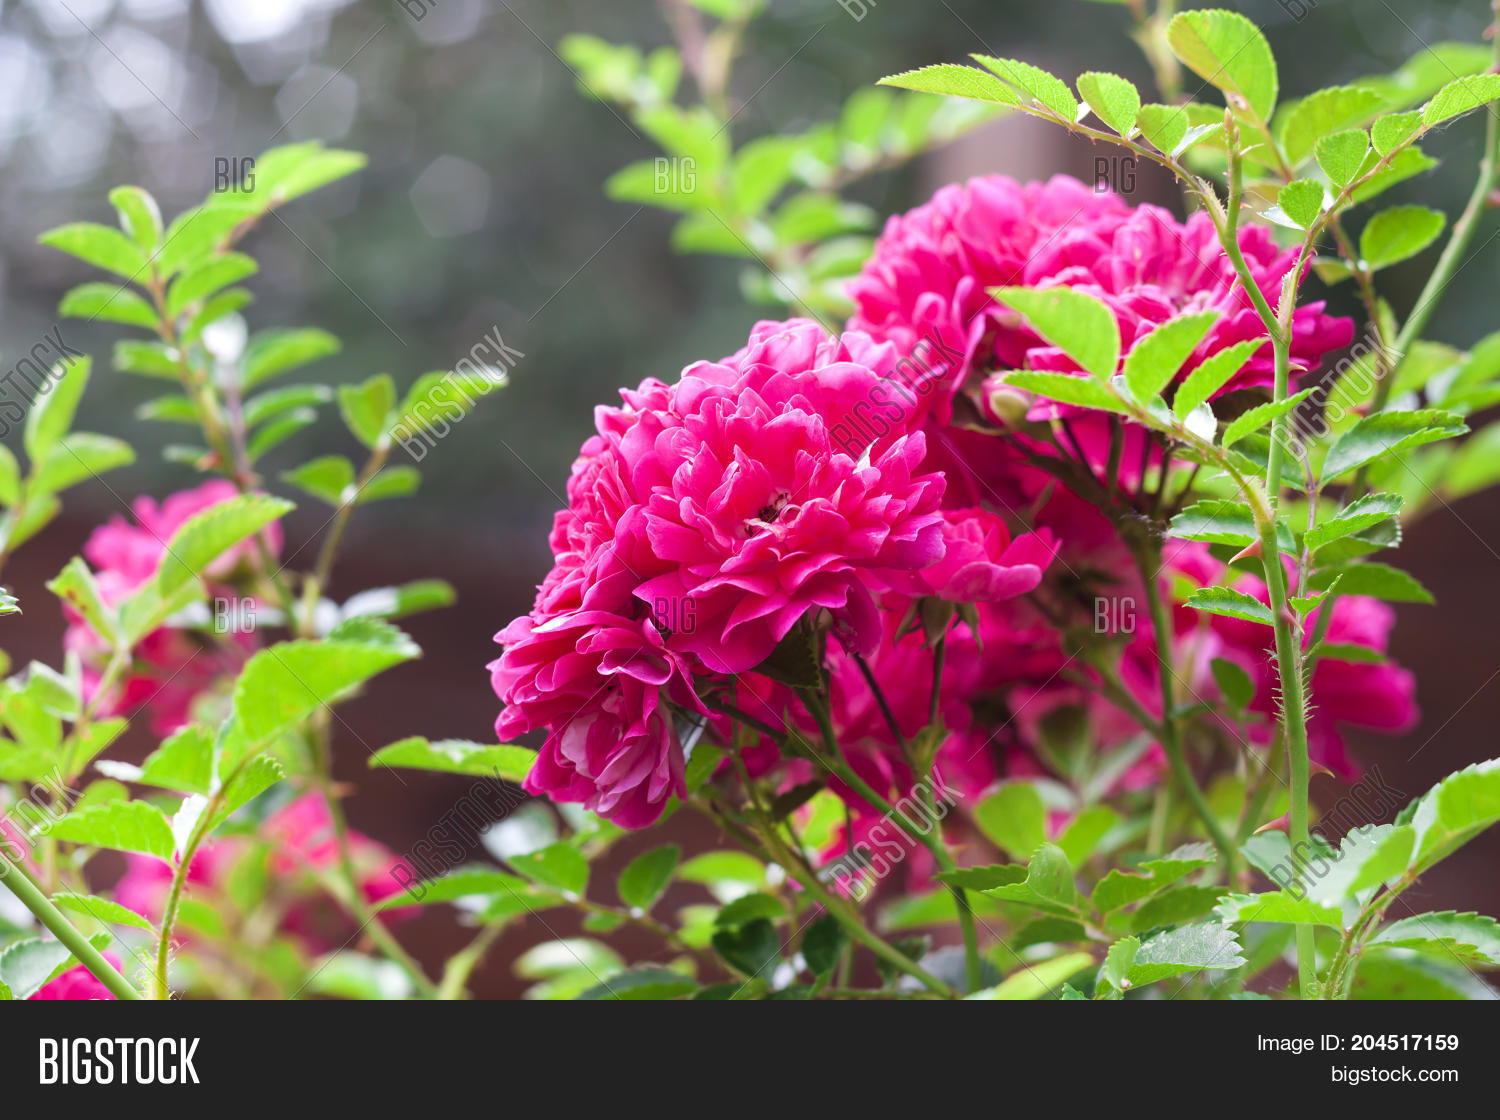 Flowers Pink Climbing Image Photo Free Trial Bigstock